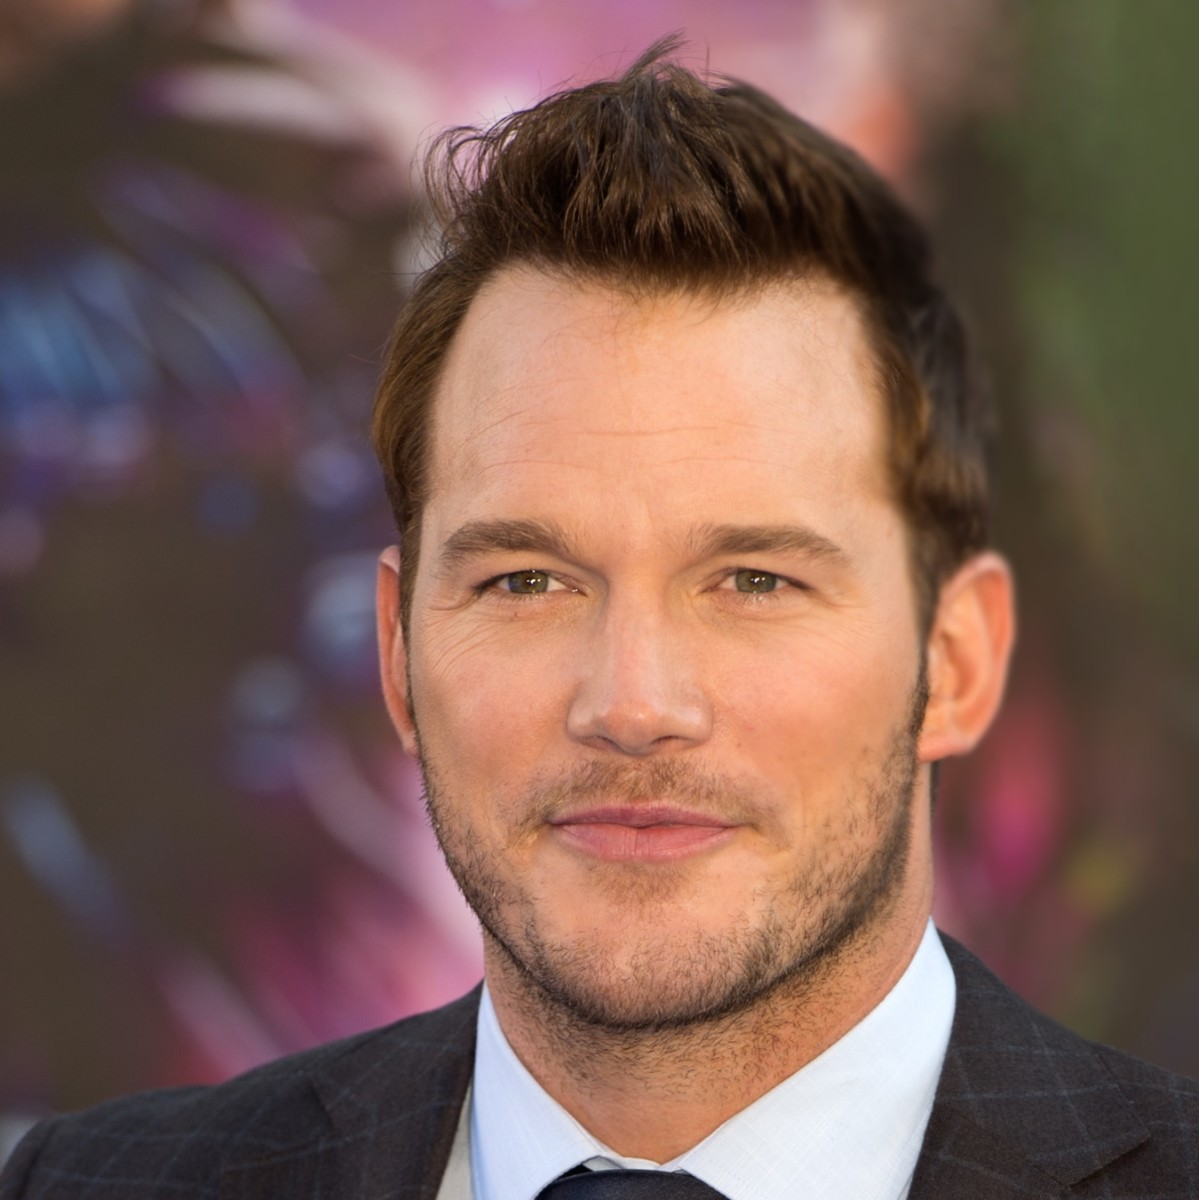 Chris Pratt photo via Getty Images